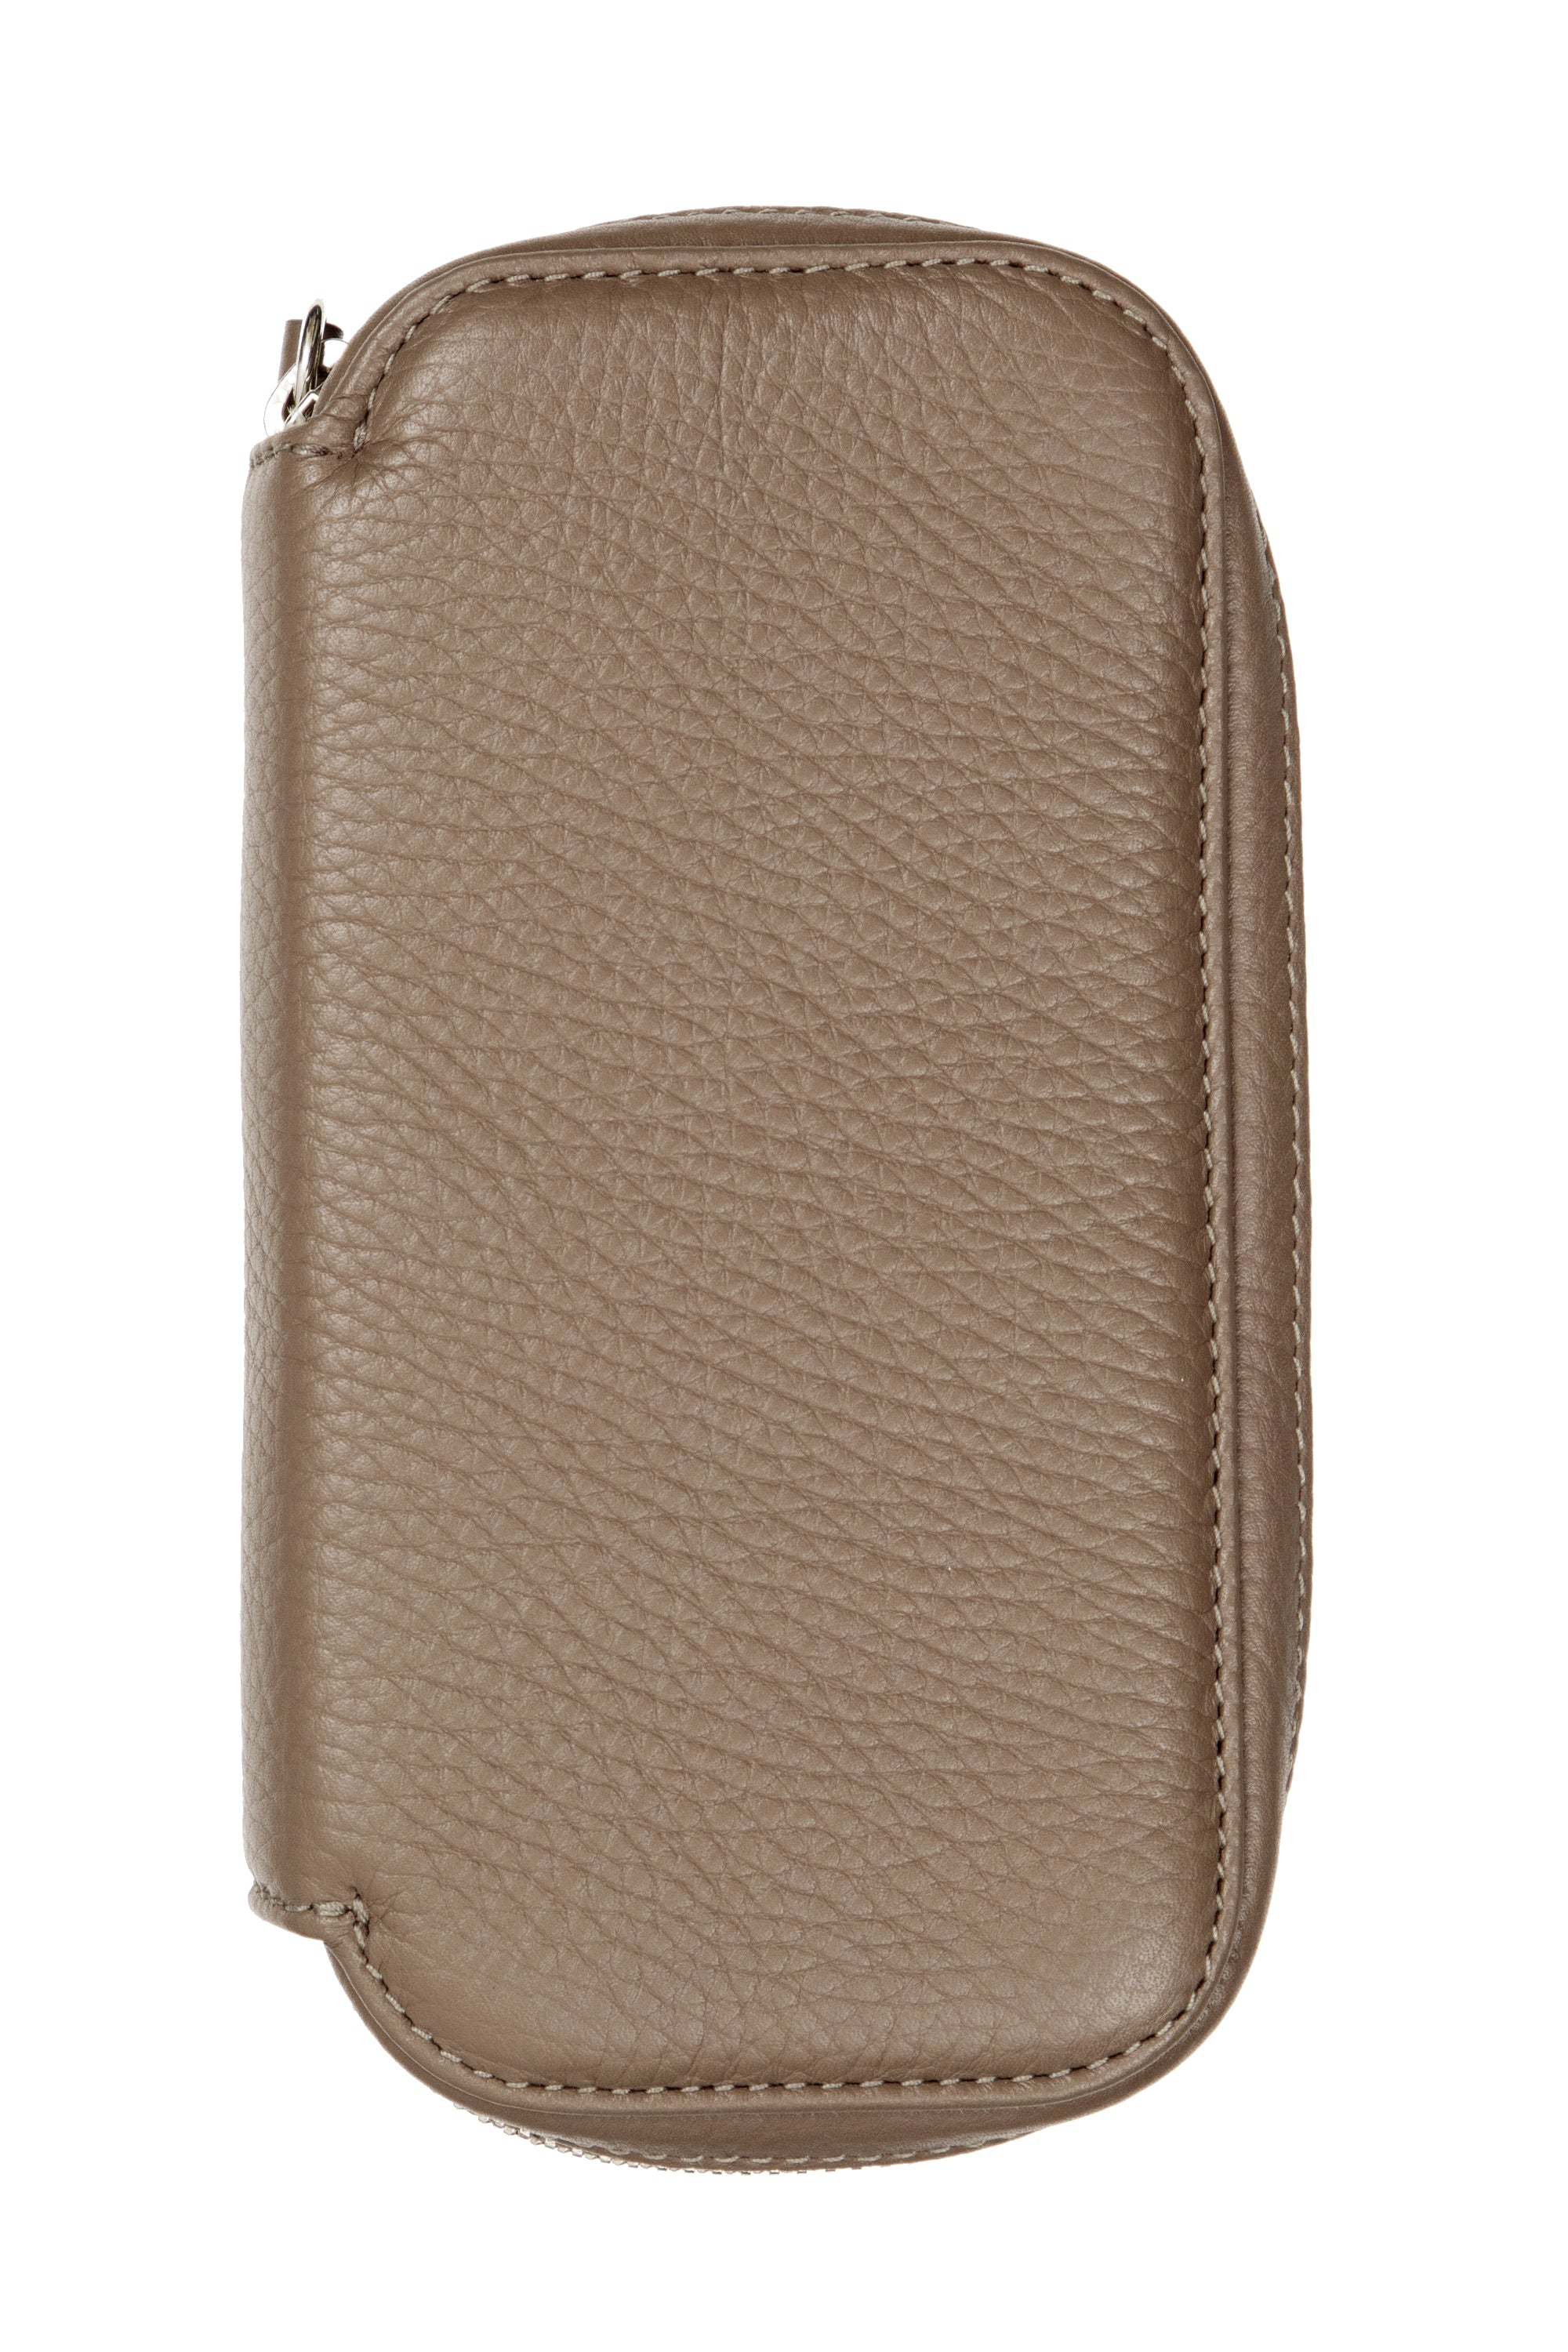 JPM 2-Watch Leather Travel Storage Case in TAUPE